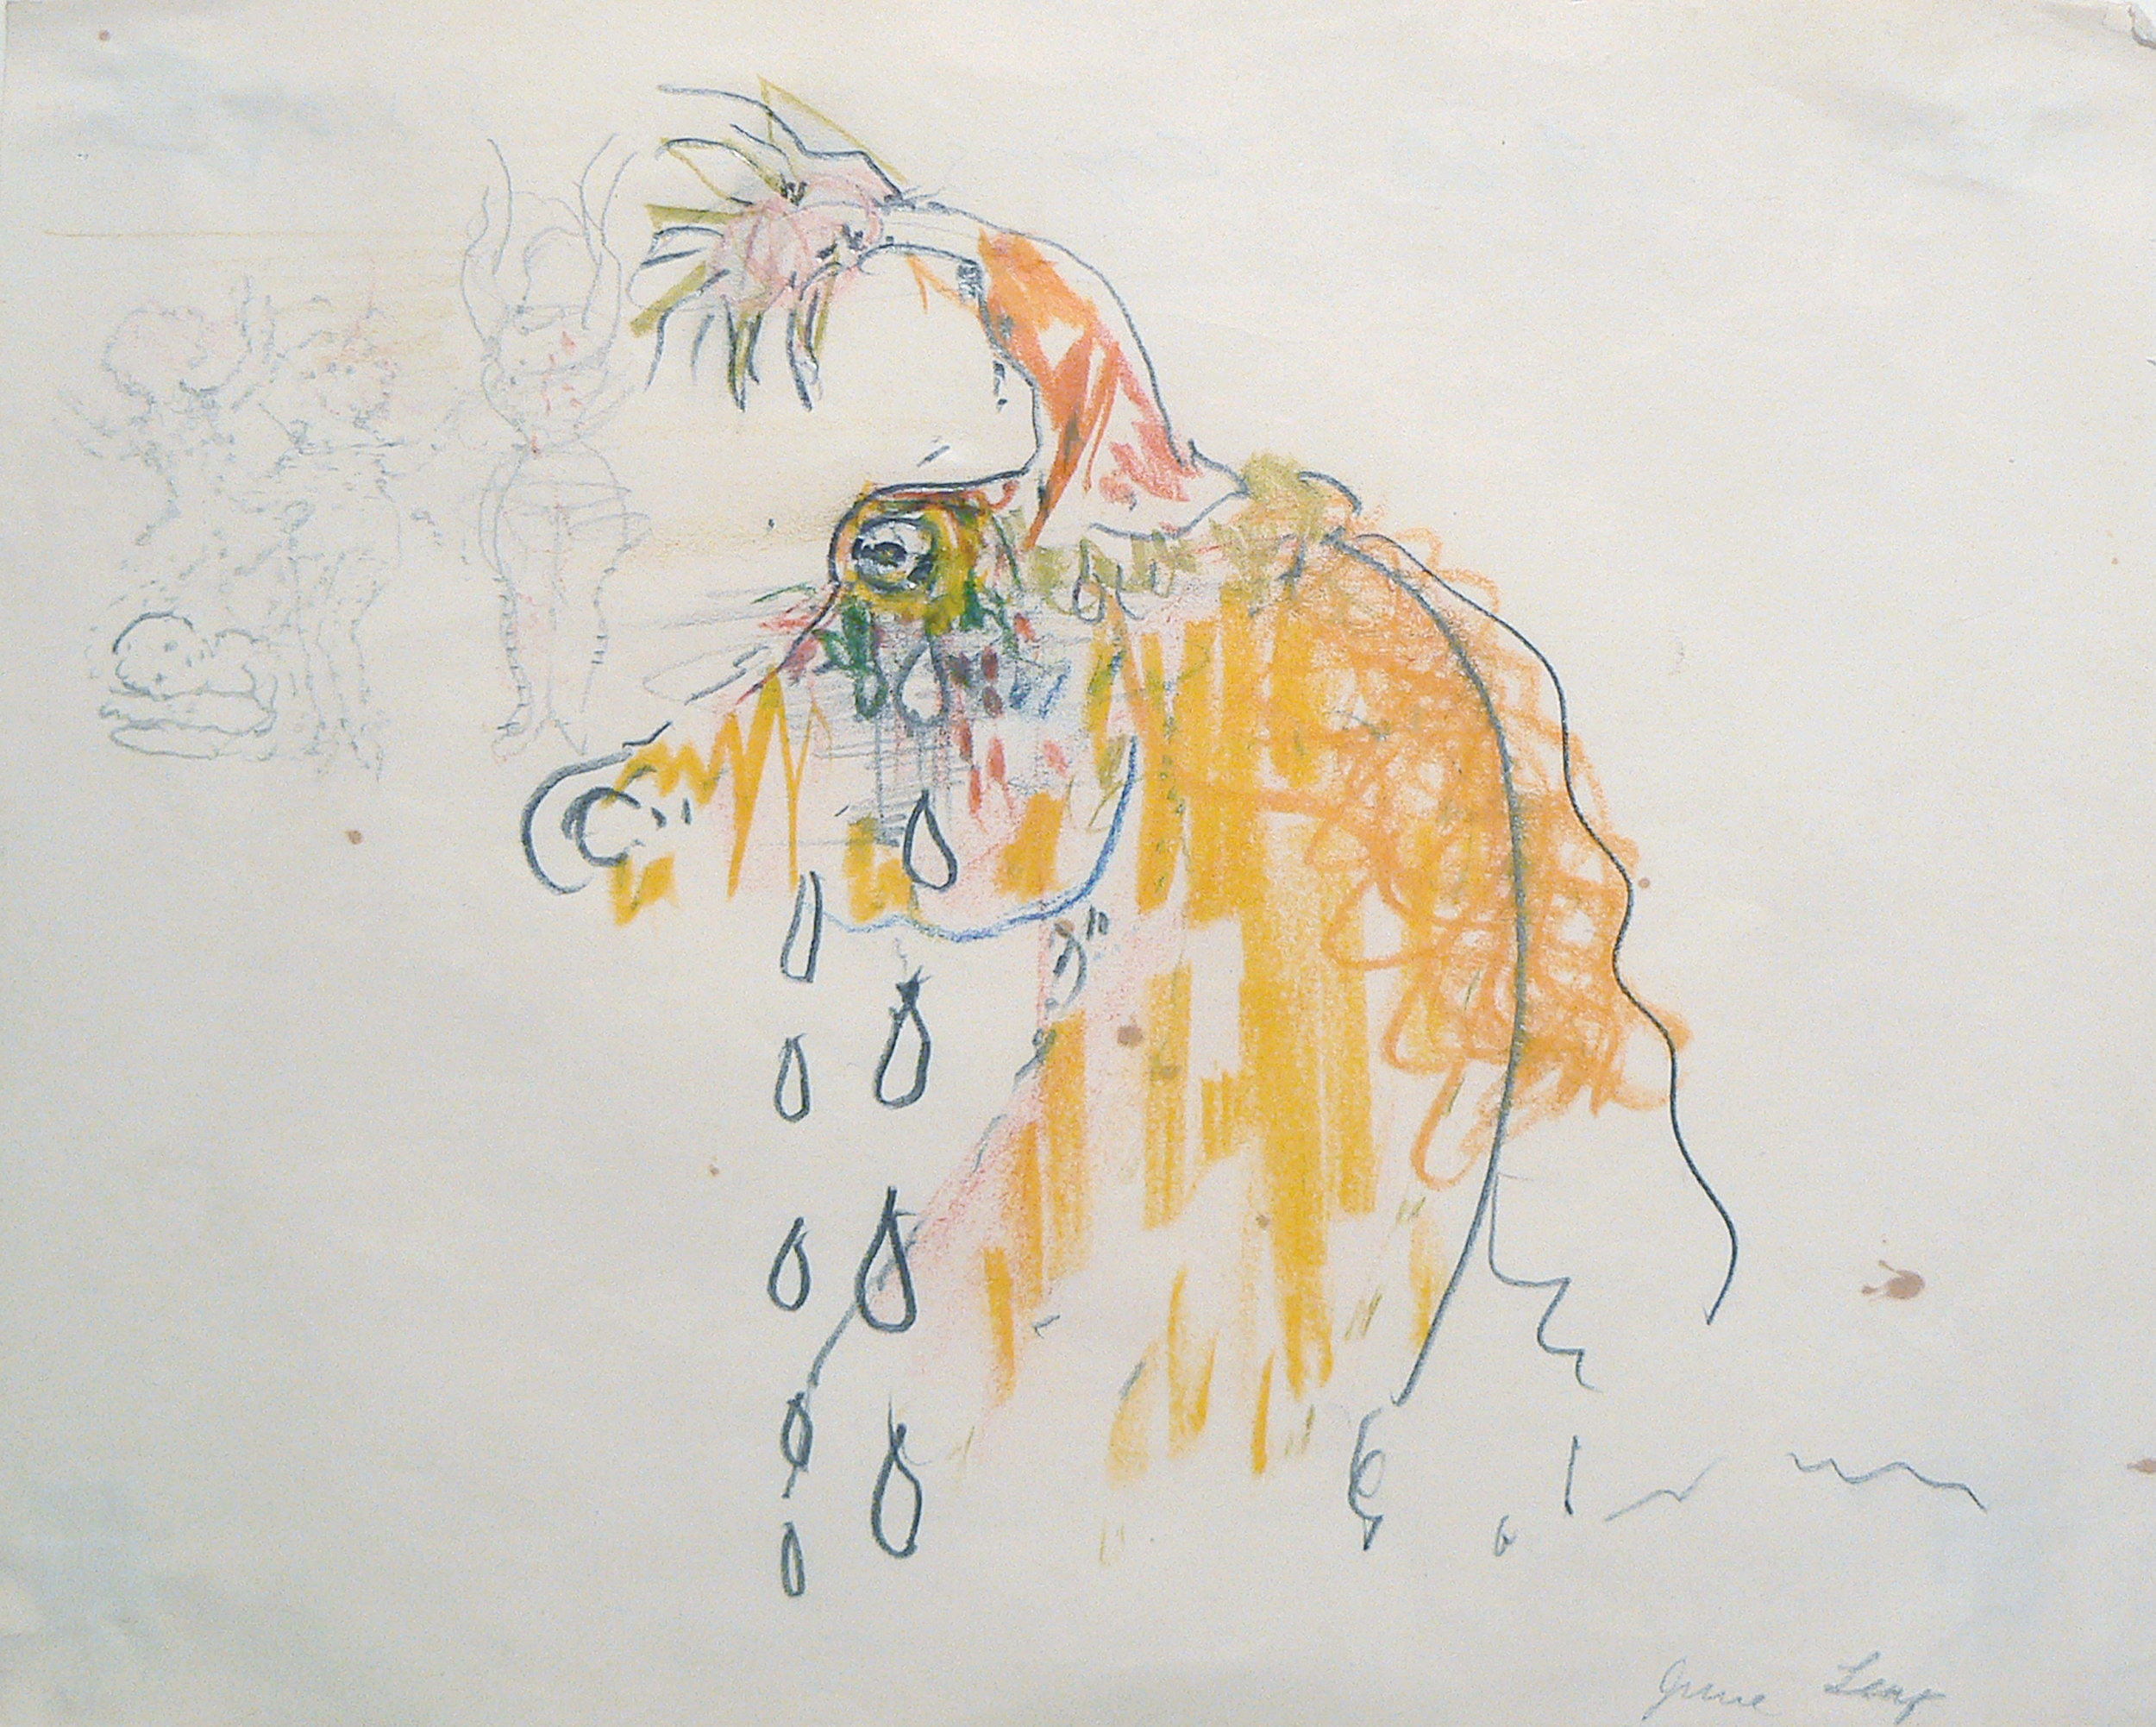 June Leaf, Crying Horse, c.1970, colored pencil & pencil on paper, 8h x 10.25w in.